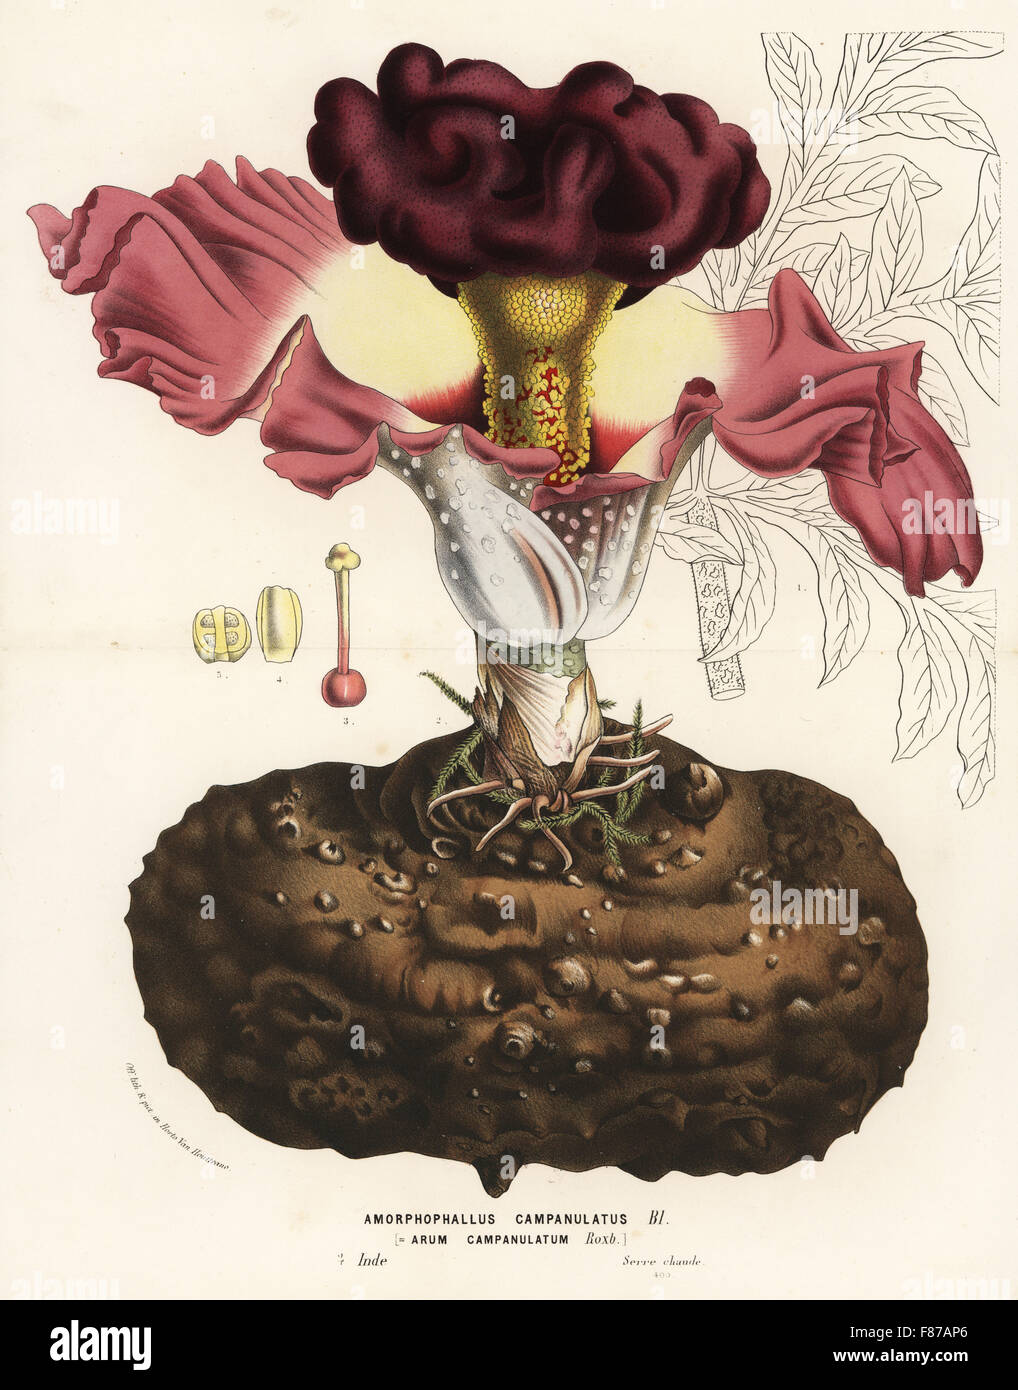 hight resolution of elephant foot yam or whitespot giant arum amorphophallus campanulatus handcoloured lithograph from louis van